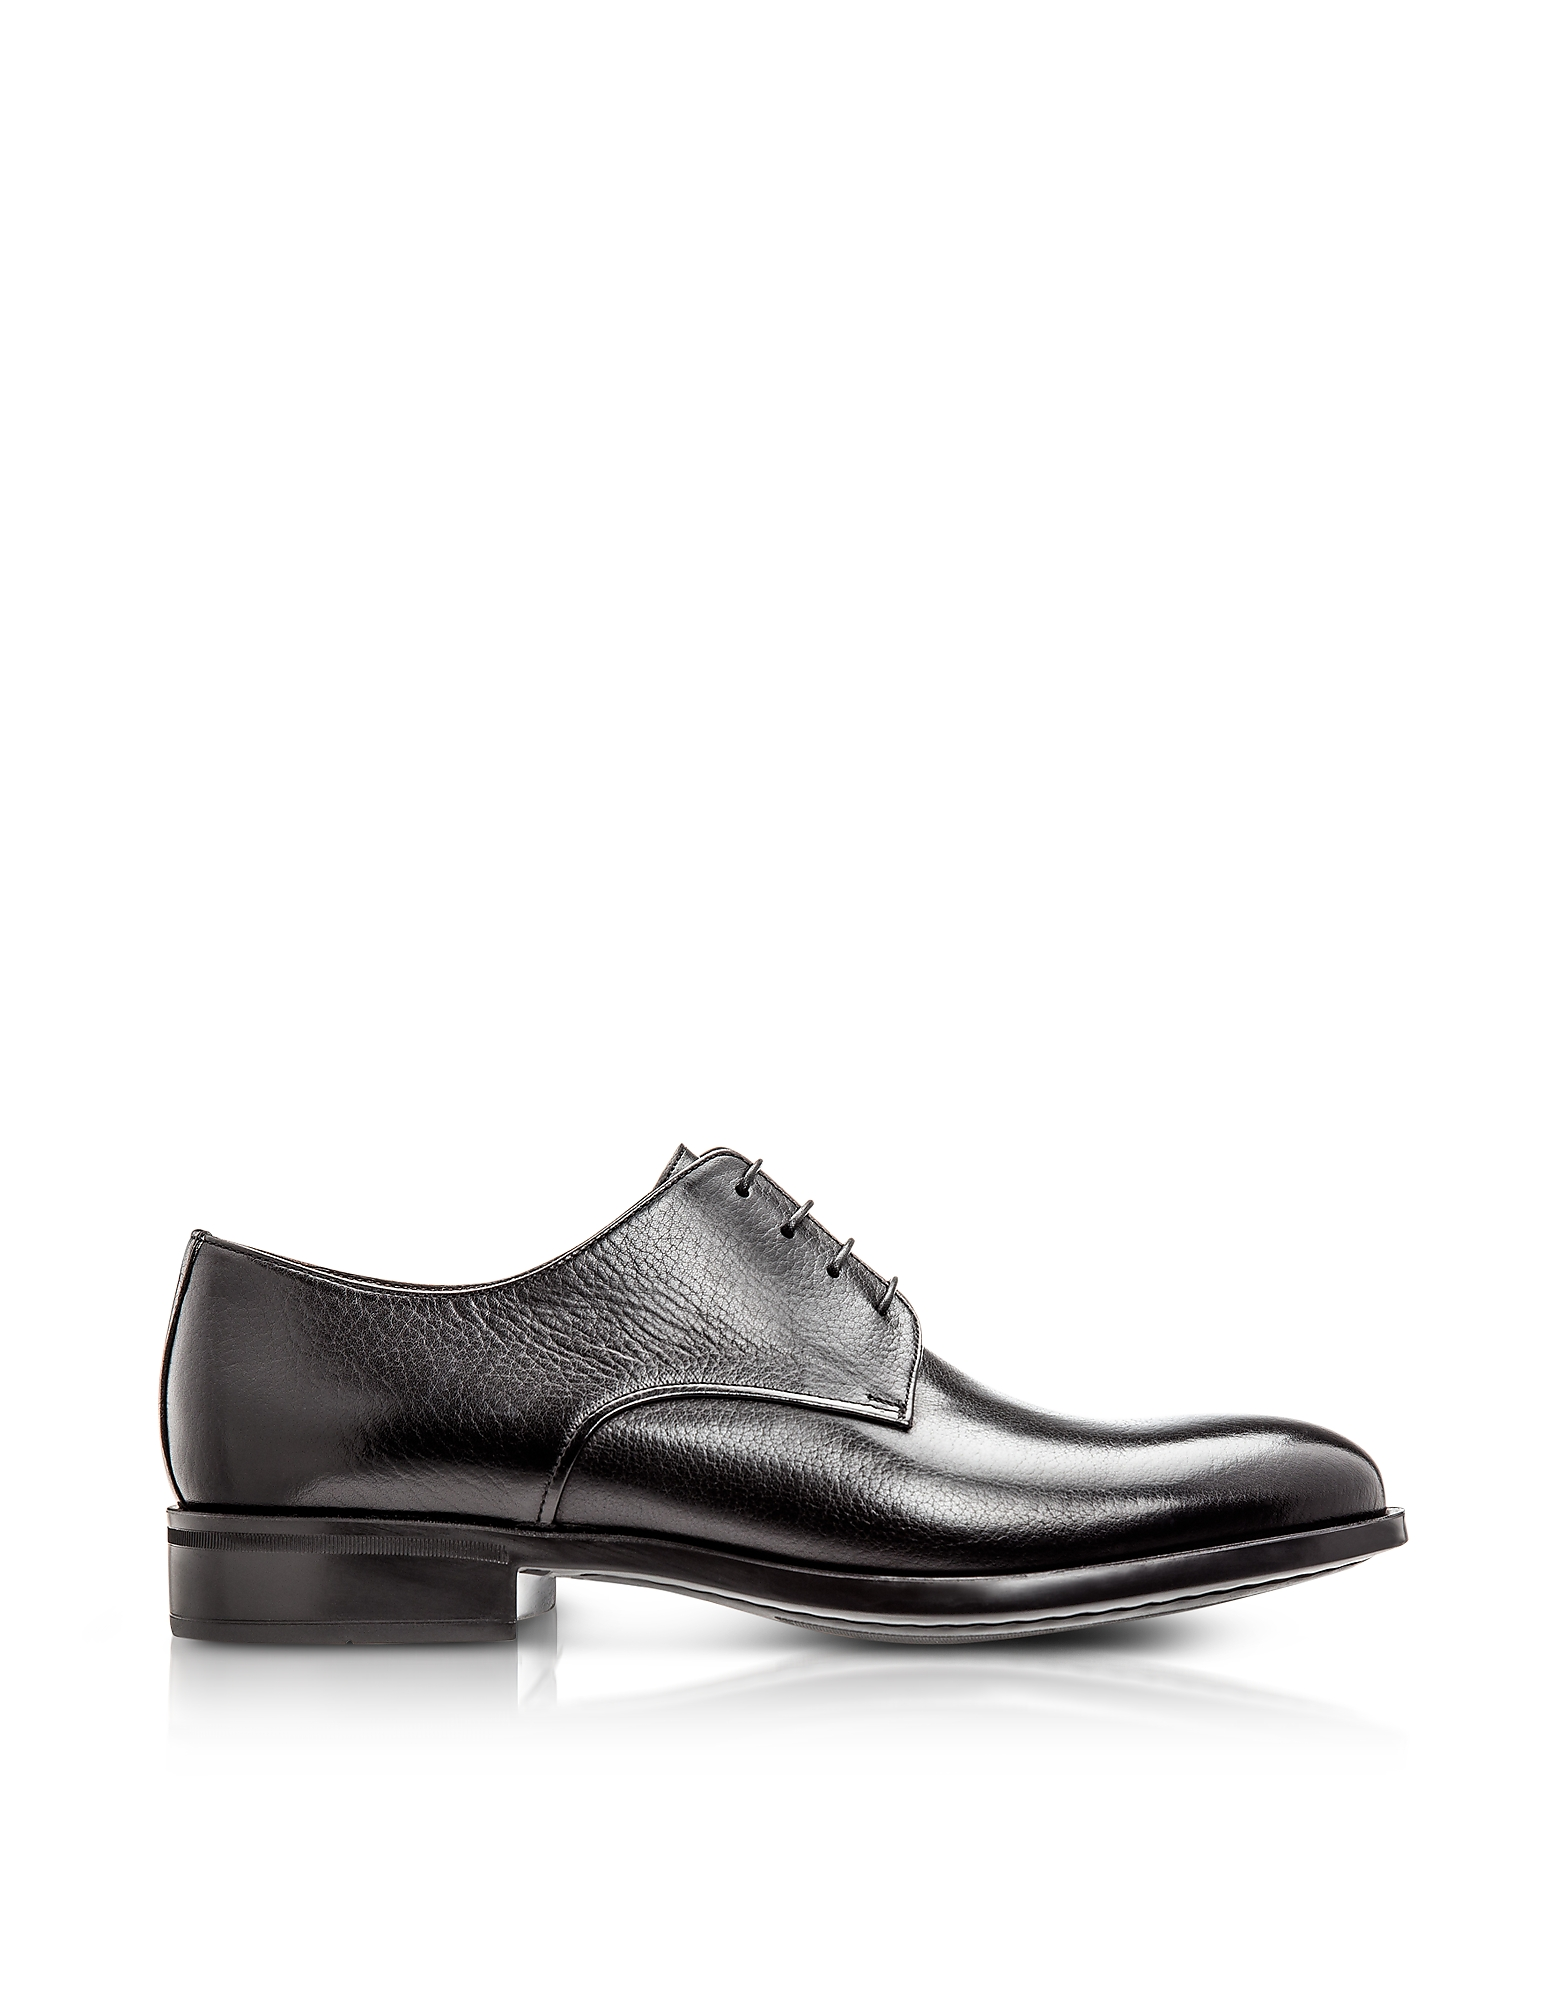 Moreschi Shoes, Cork Black M Buffalo Leather Derby Shoes